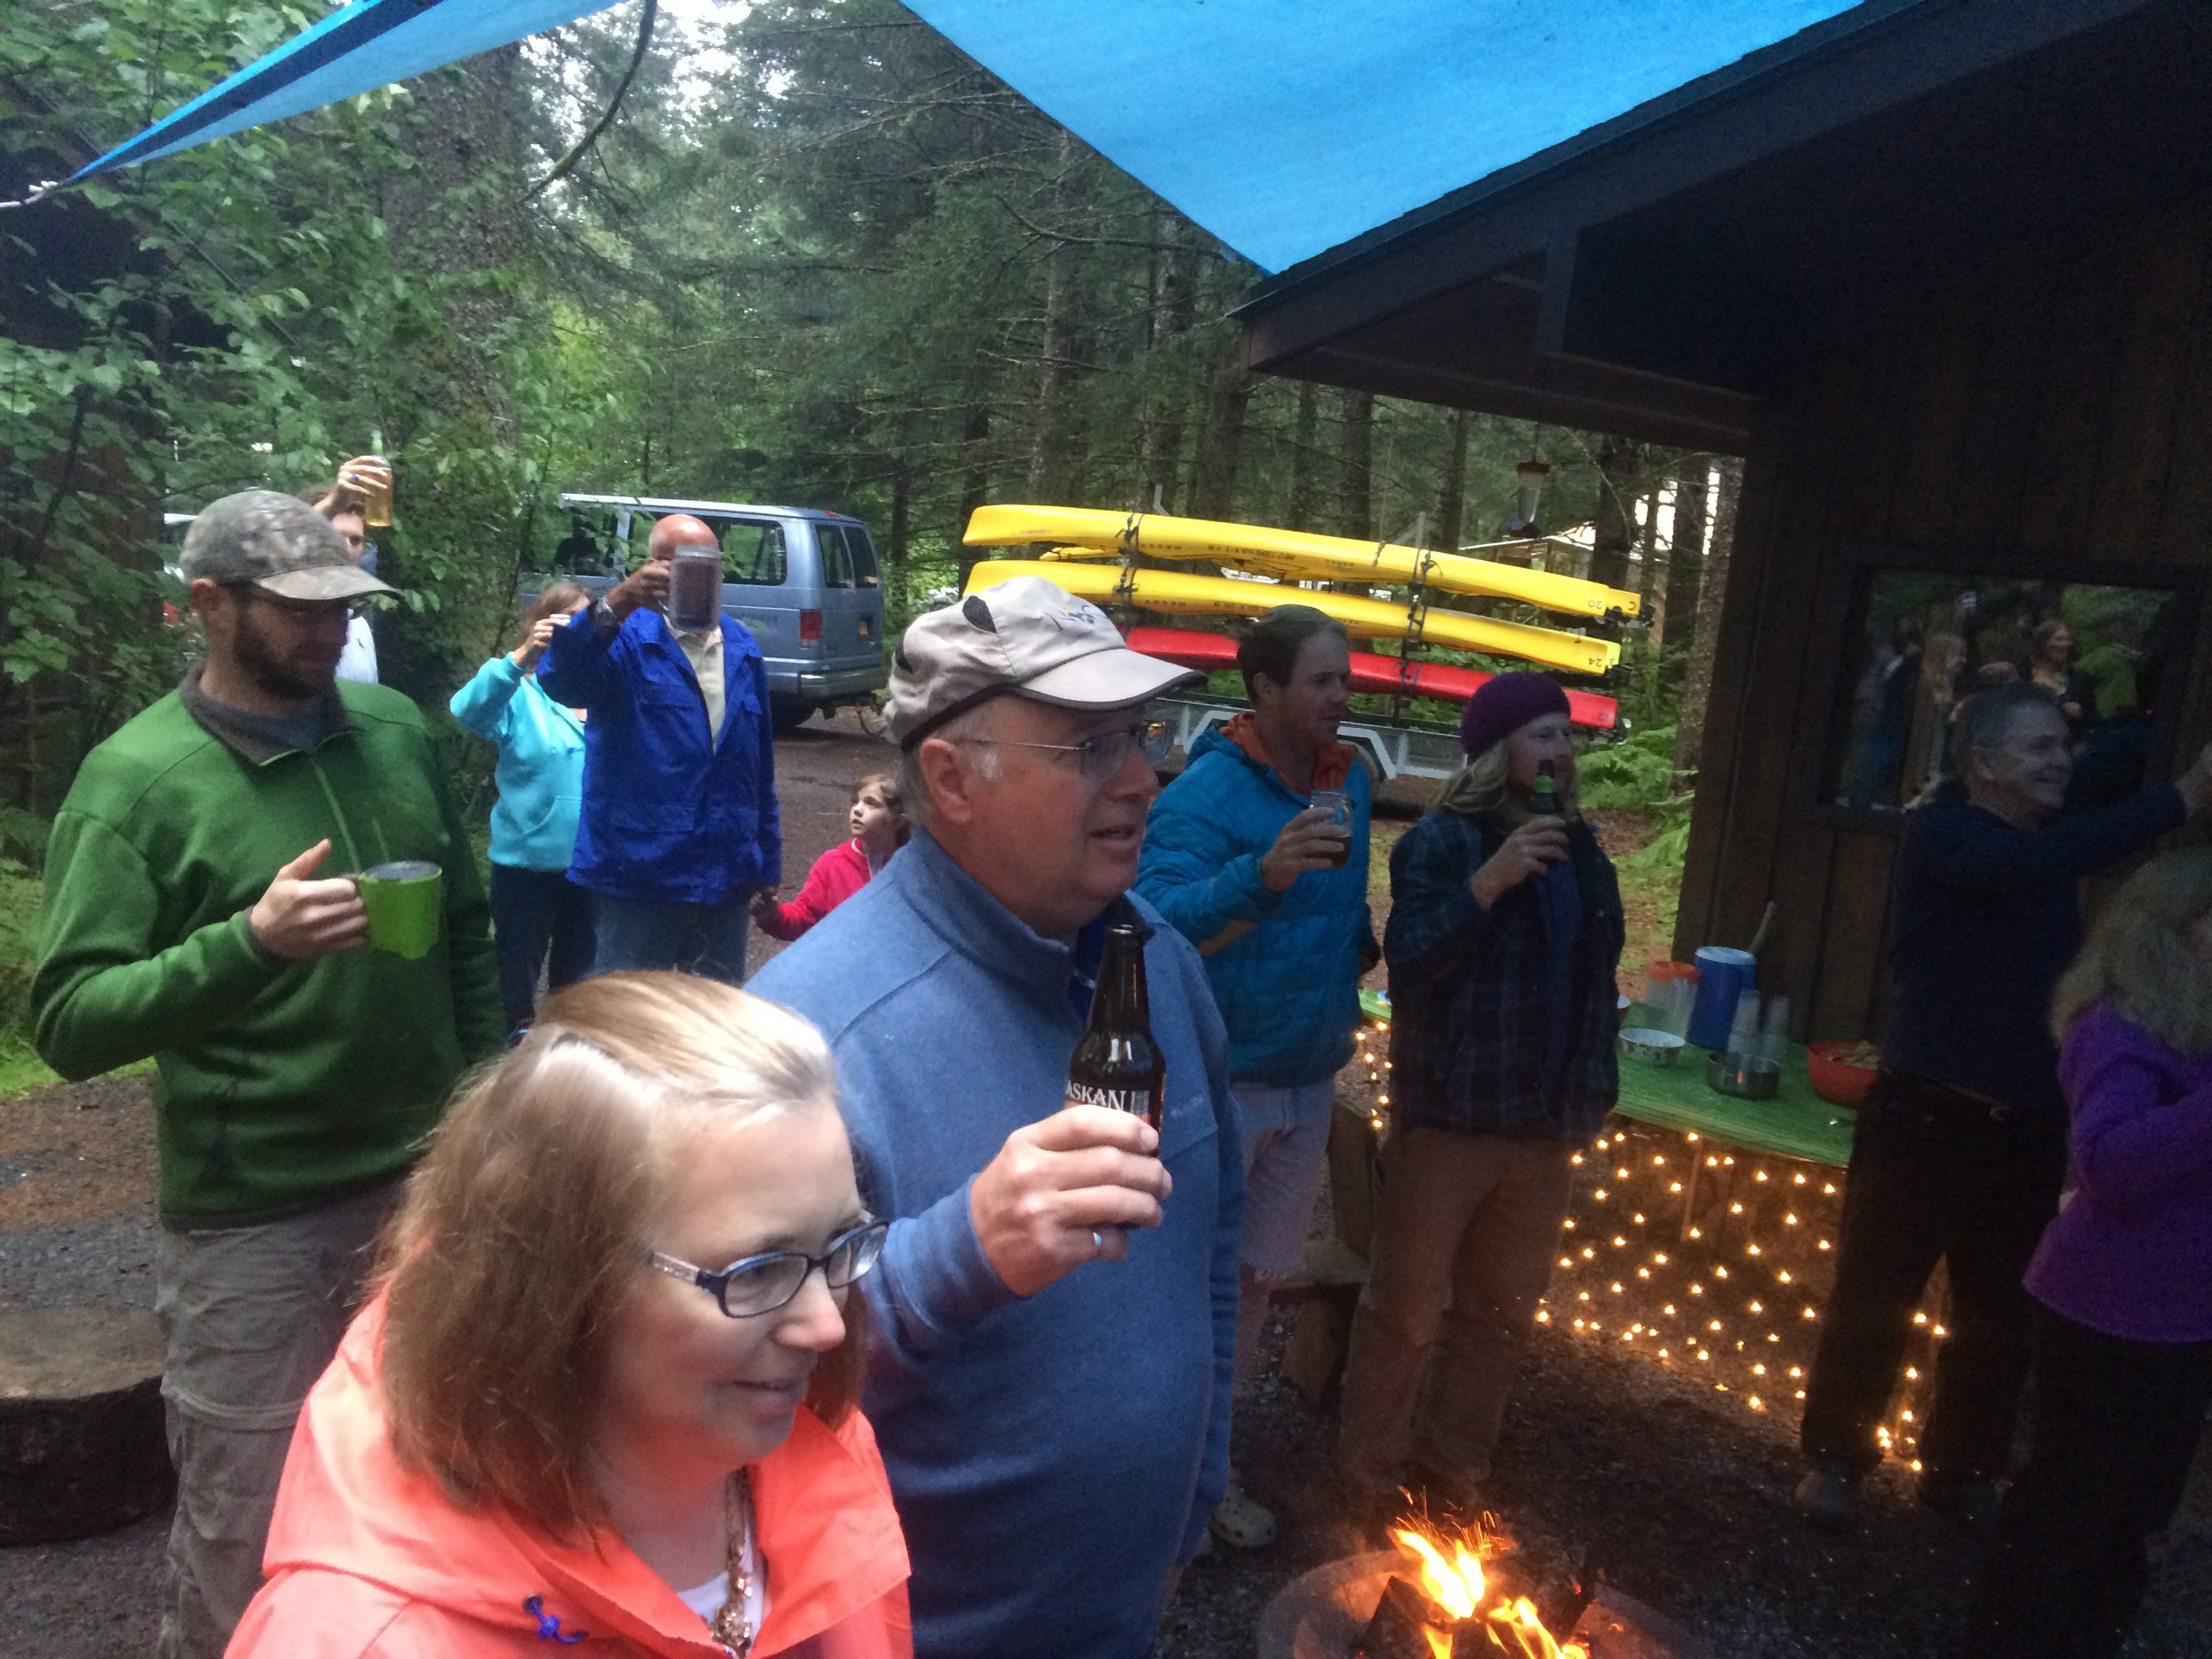 Lifting a glass at the annual Sunny Cove Polka Party